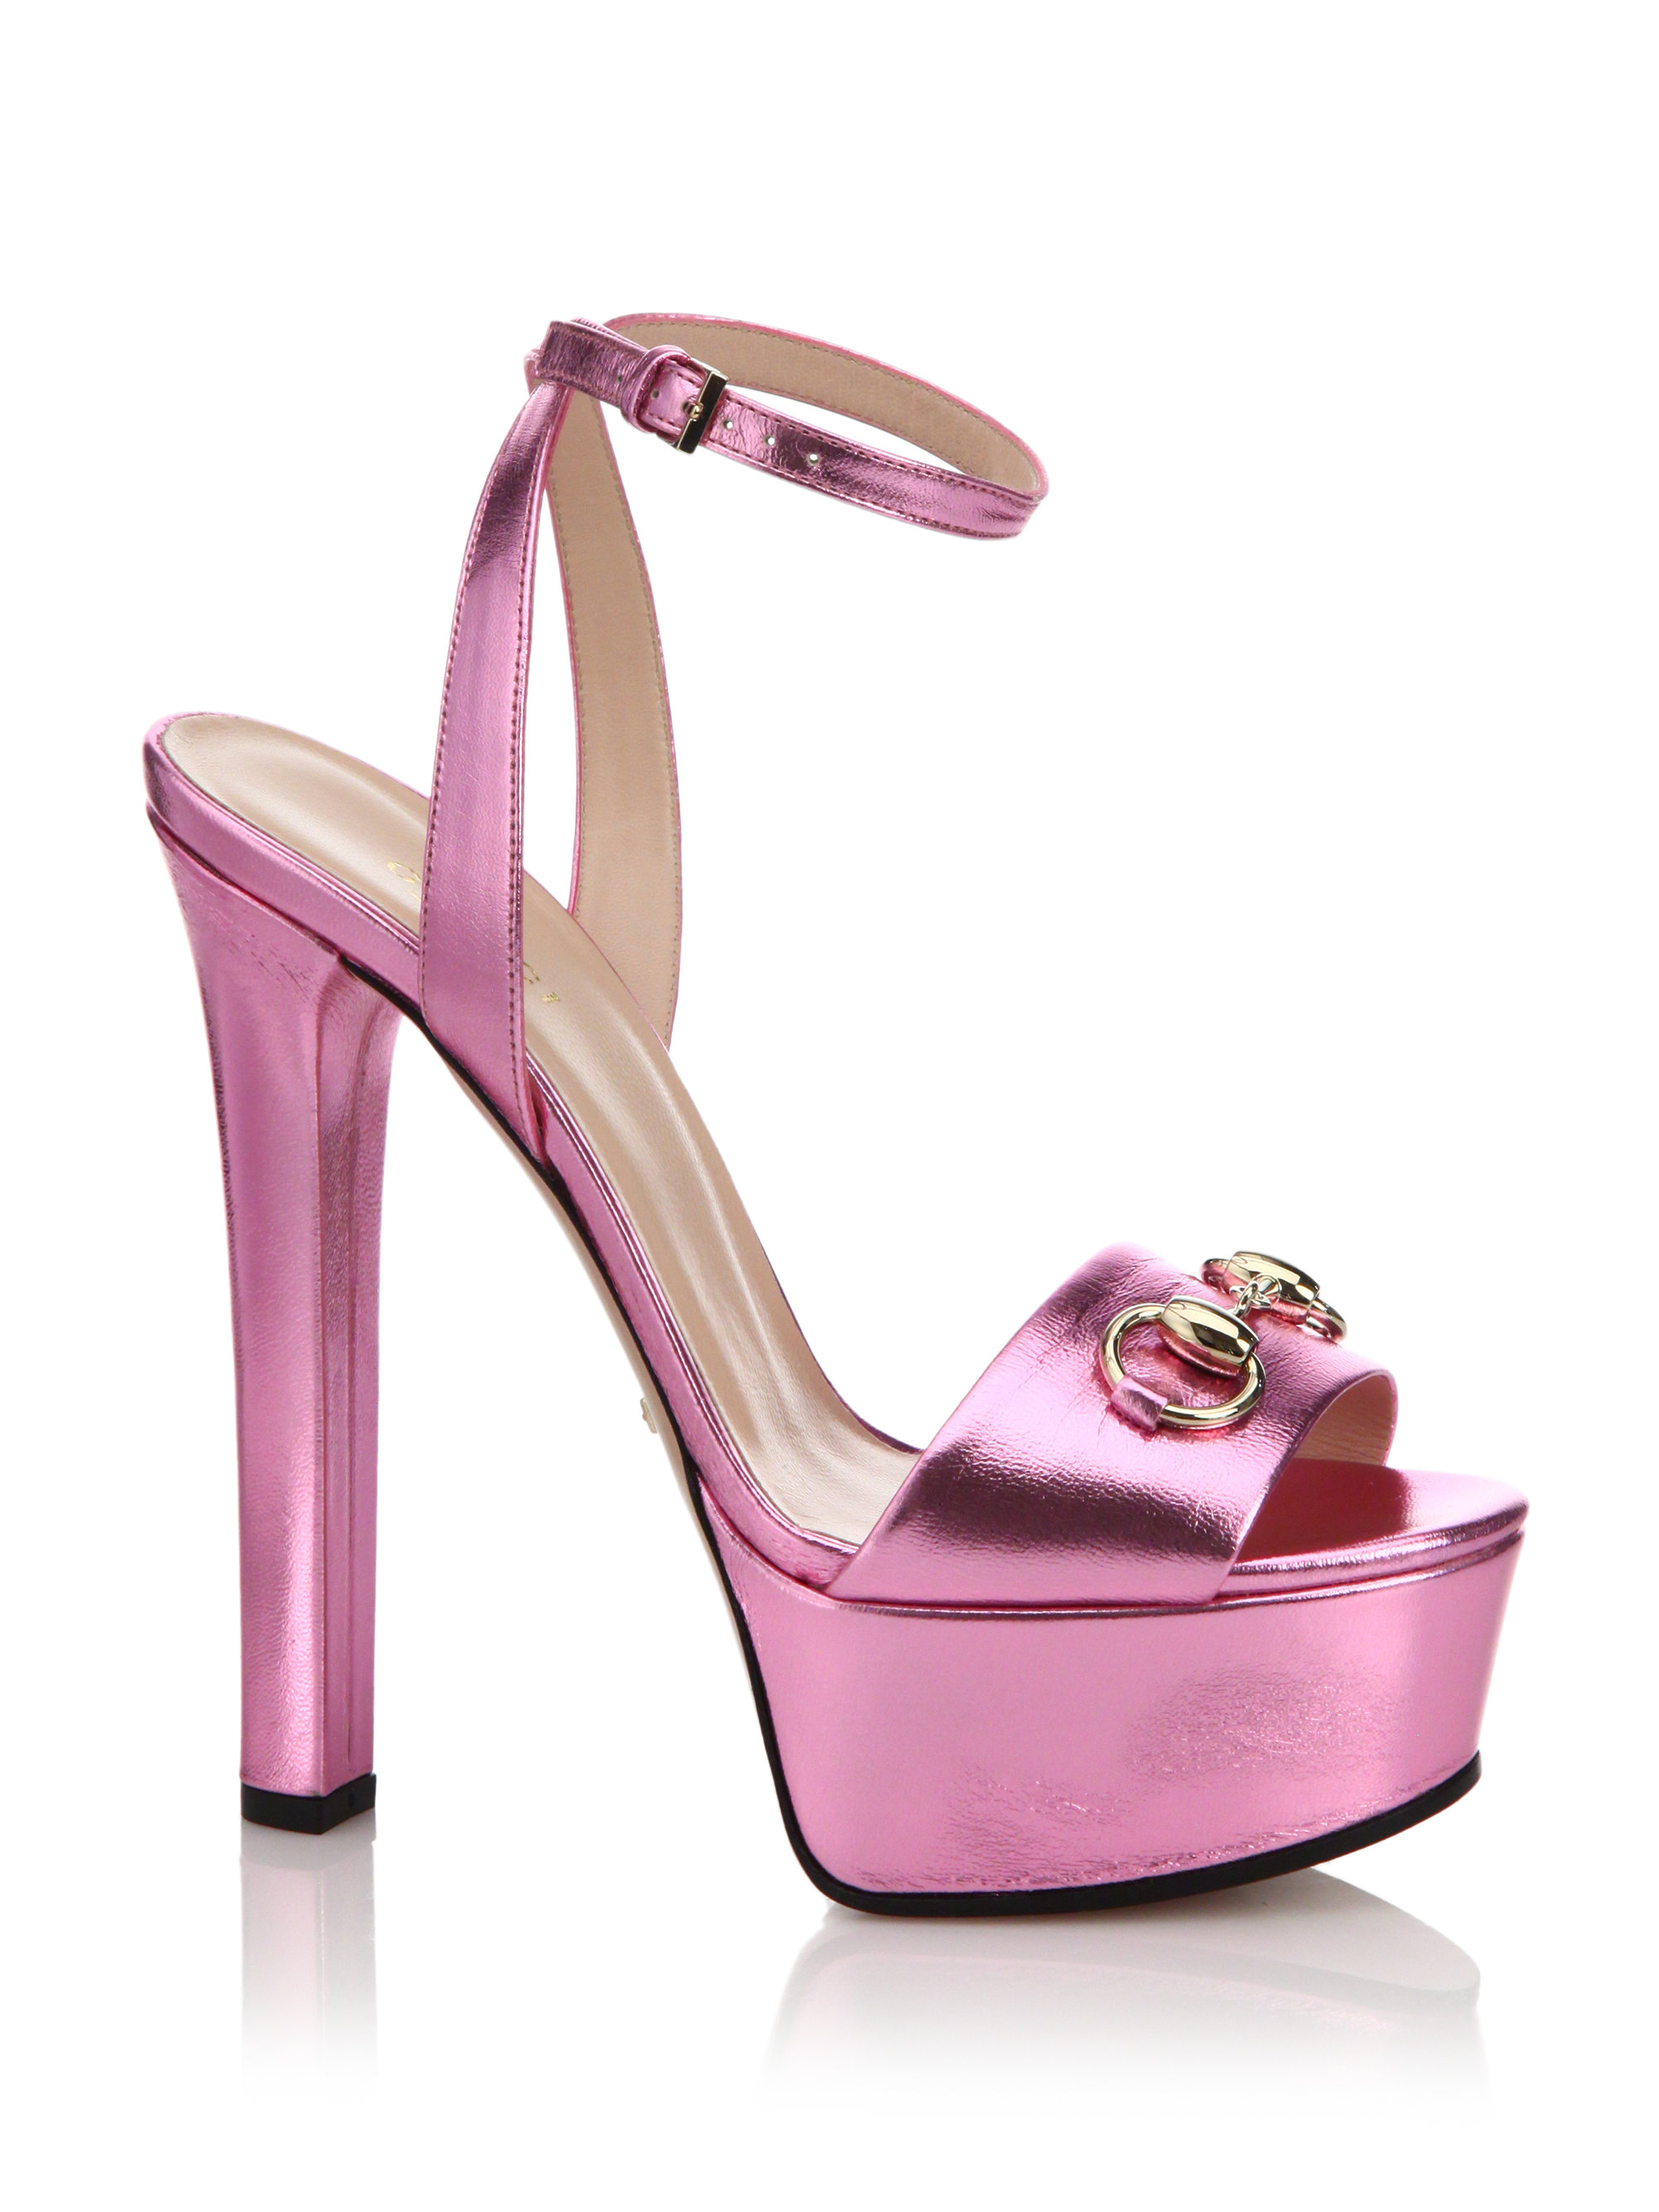 2984eef88bd Lyst - Gucci Leila Metallic Leather Platform Sandals in Pink